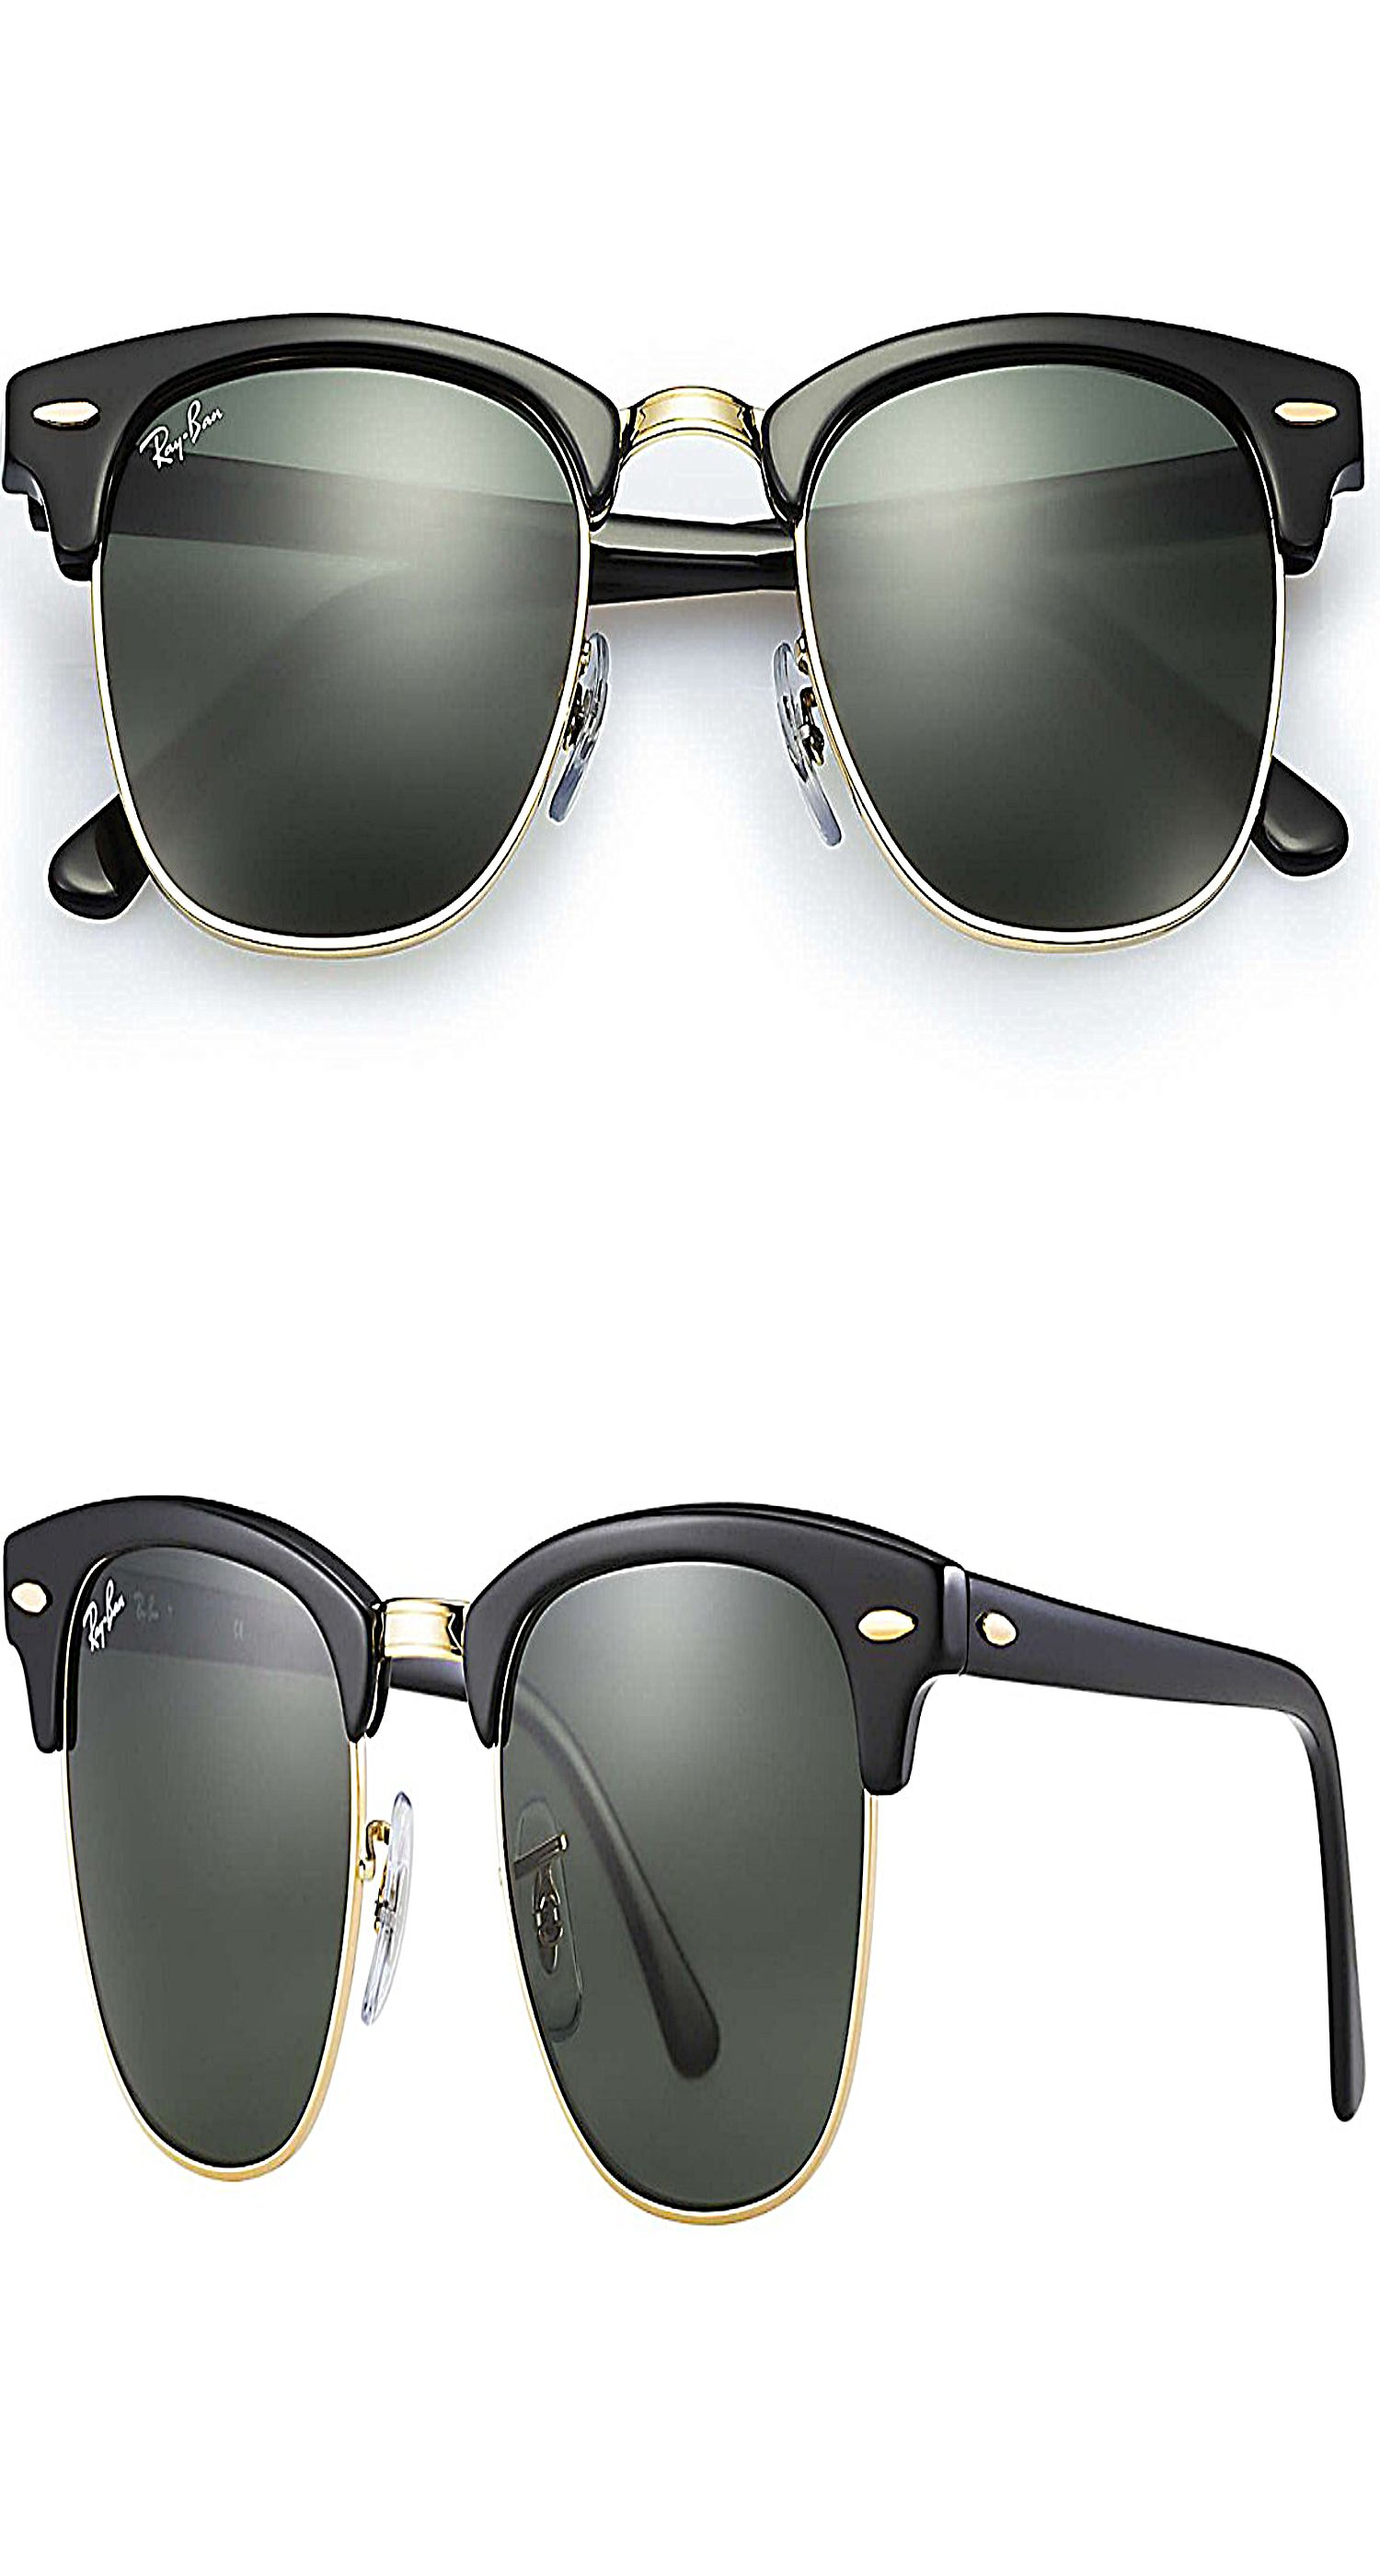 5b616748451 Ray Ban Sunglasses Clubmaster 3016 (49 mm